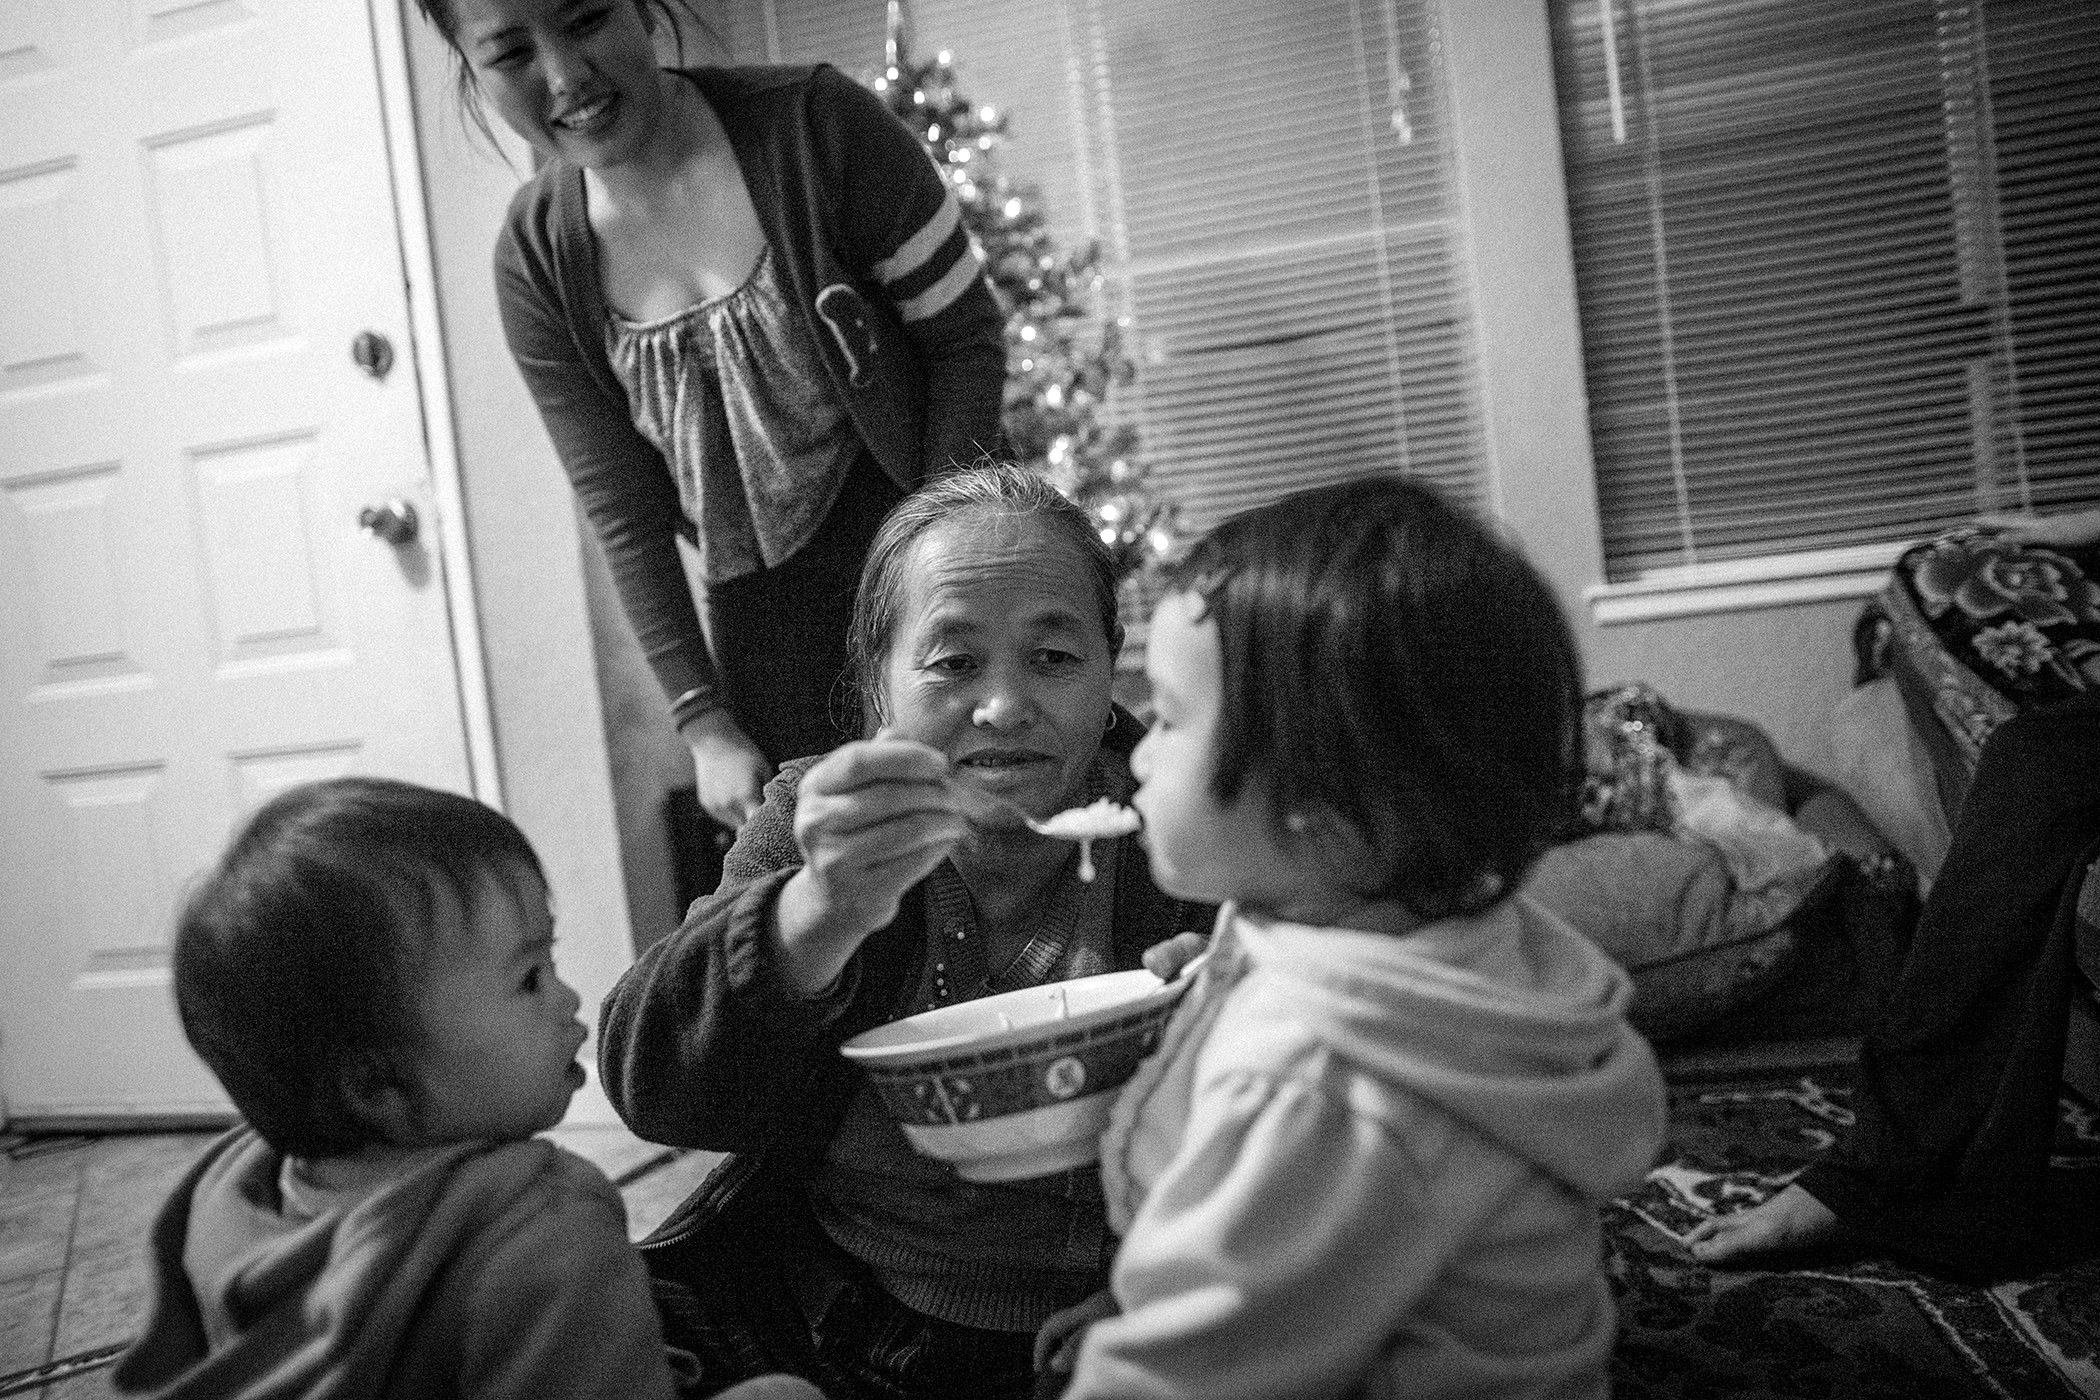 Fresno Hmong Seattle photojournalist Mike Kane editorial photographer